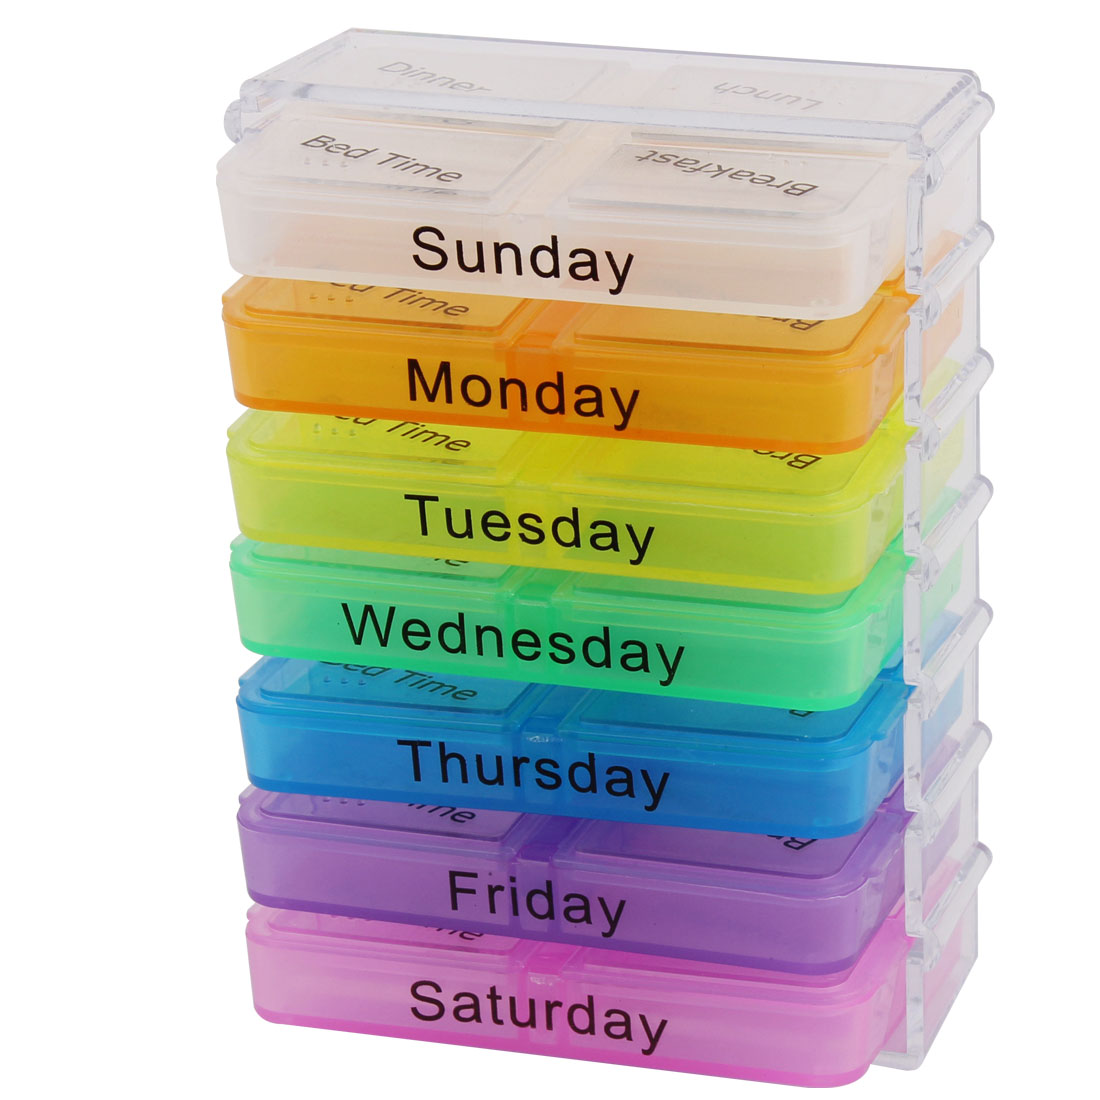 28 Slots Pill Box Holder Medicine Storage Container Case Colorful